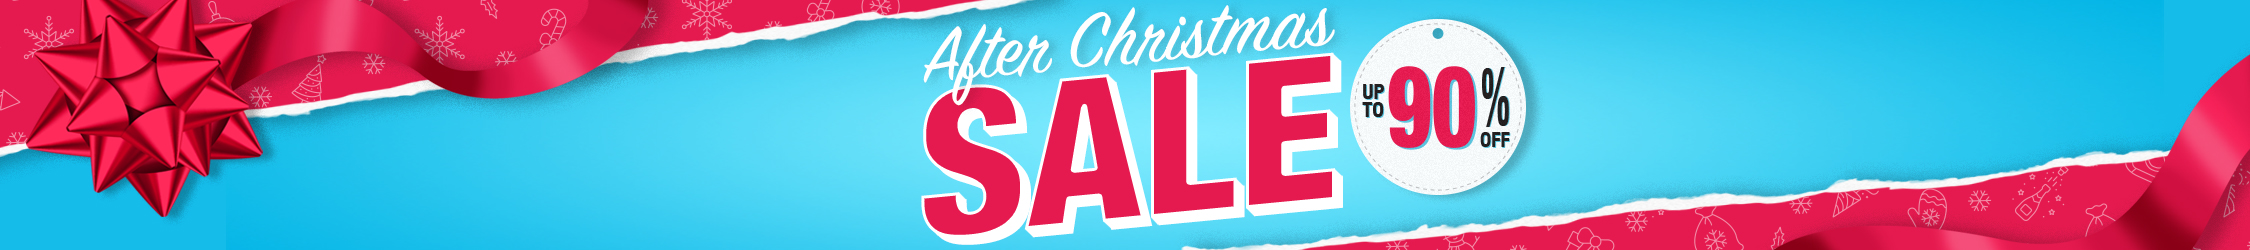 After Christmas Sale 2019 Up to 90% Off!